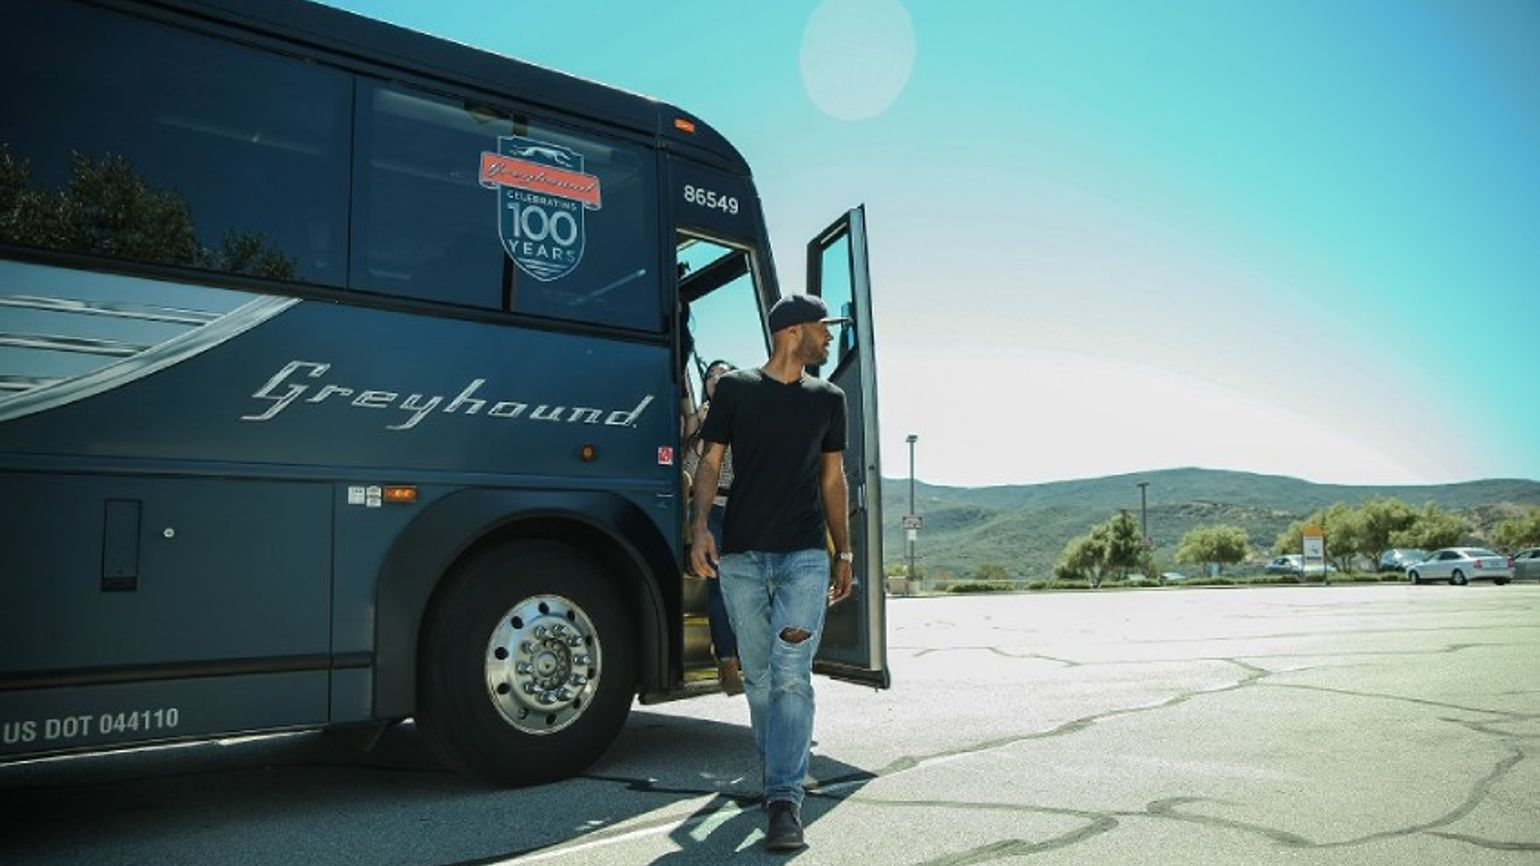 Germany's FlixMobility buys US's Greyhound buses